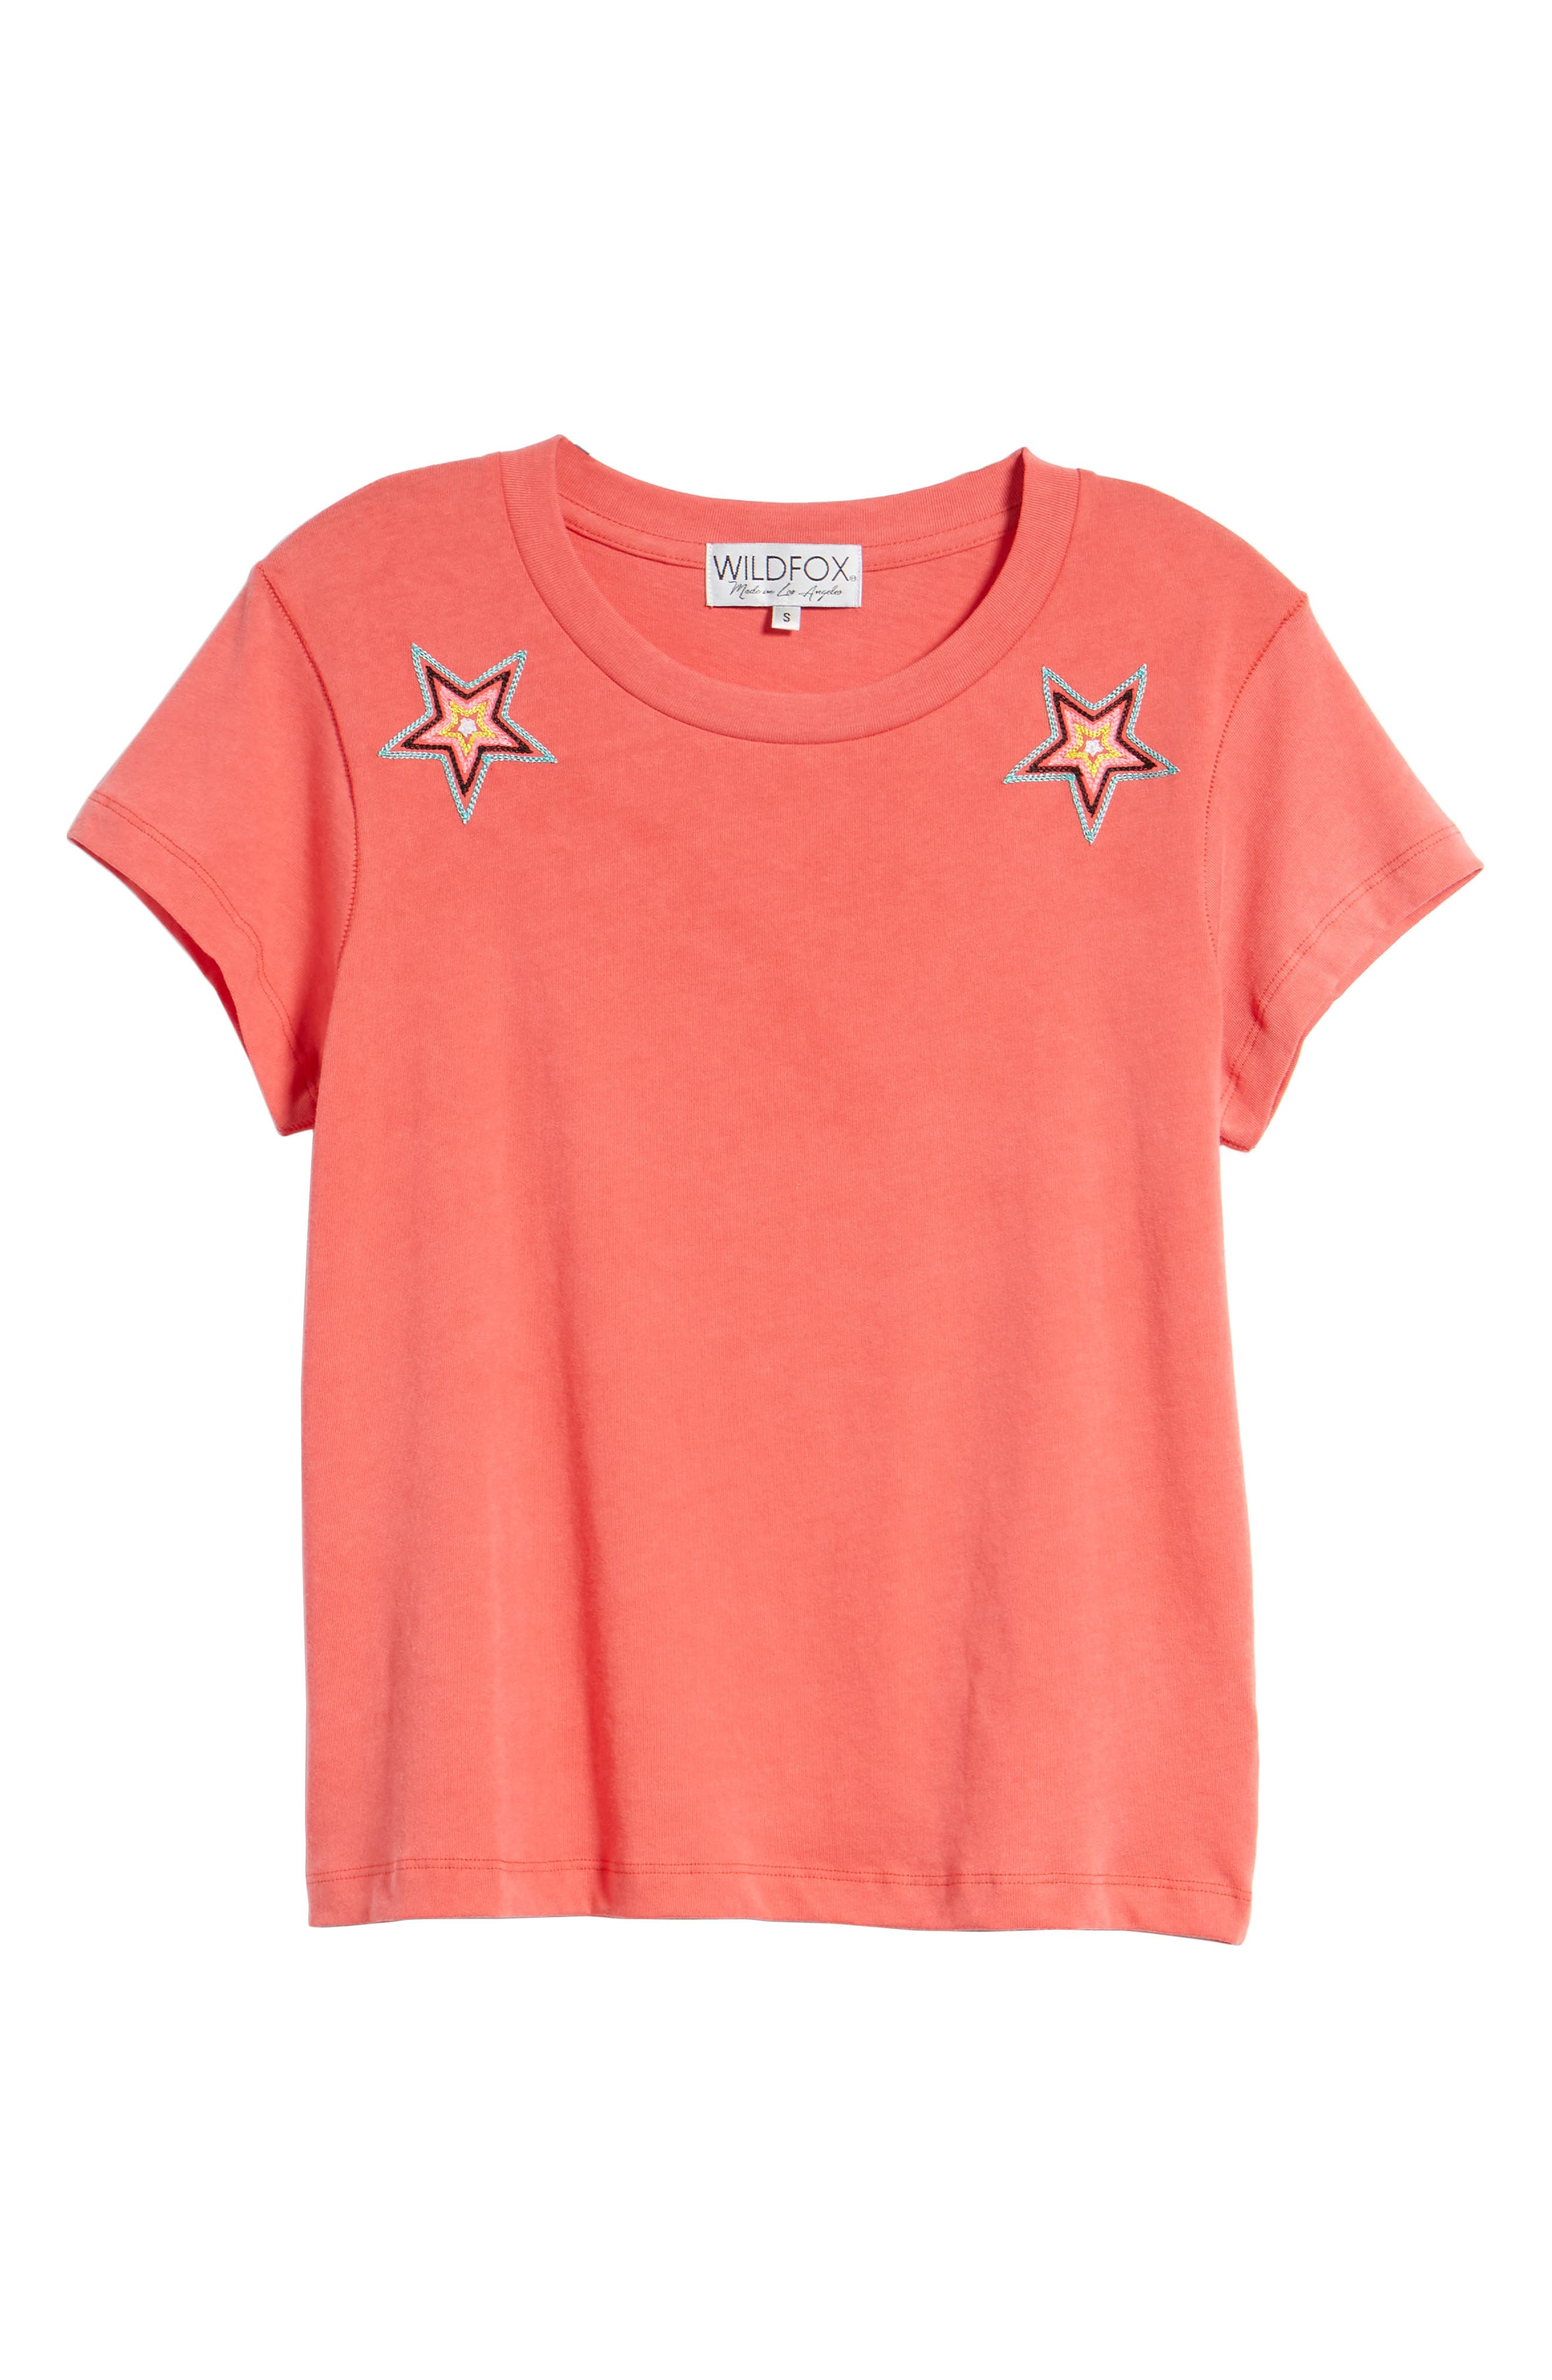 Starbright Number 9 Tee,                             Alternate thumbnail 7, color,                             640